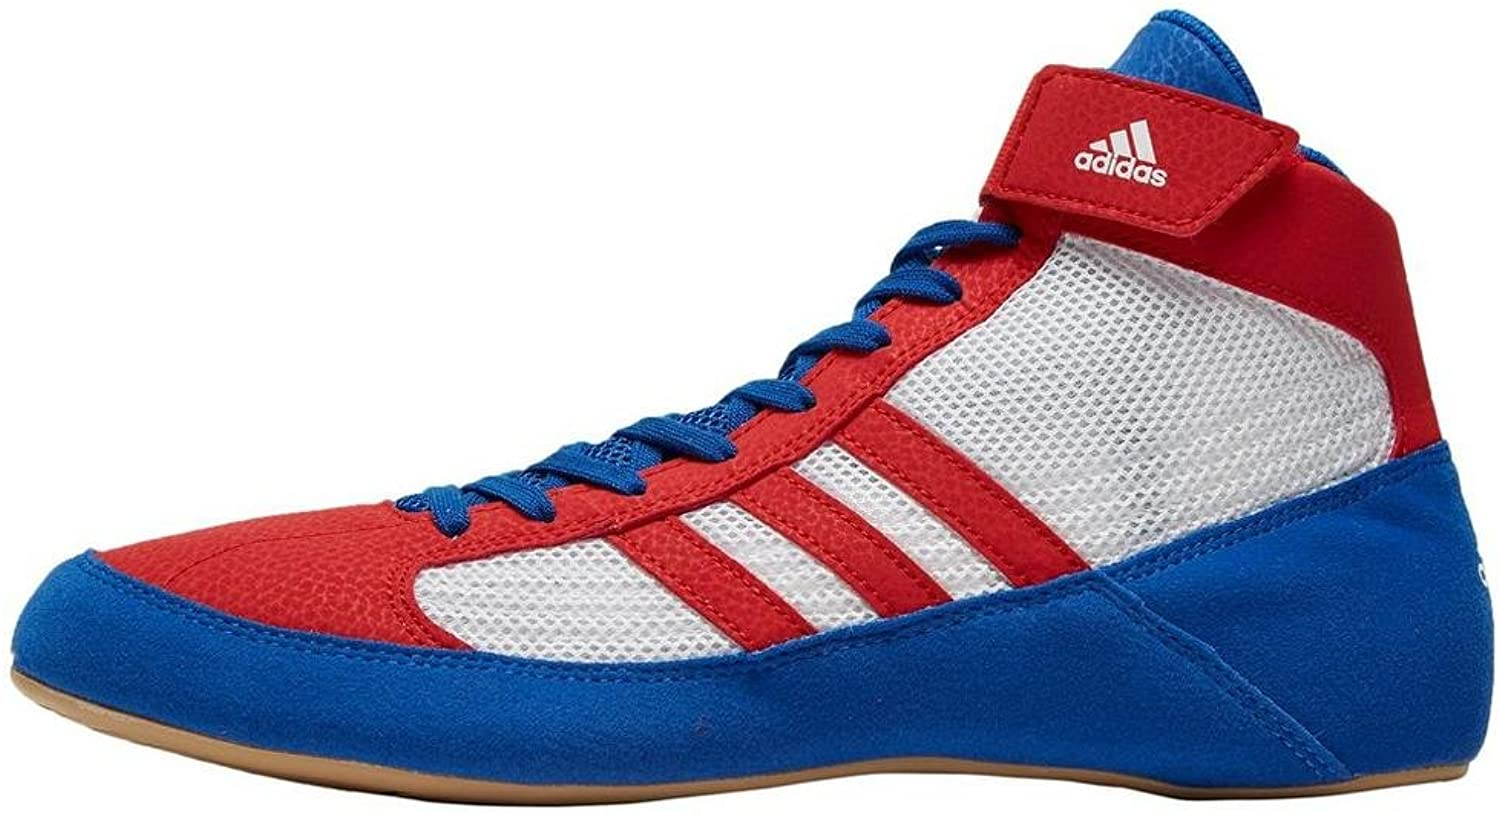 Adidas Havoc Mens Adult Wrestling Trainer shoes Boot Red White bluee